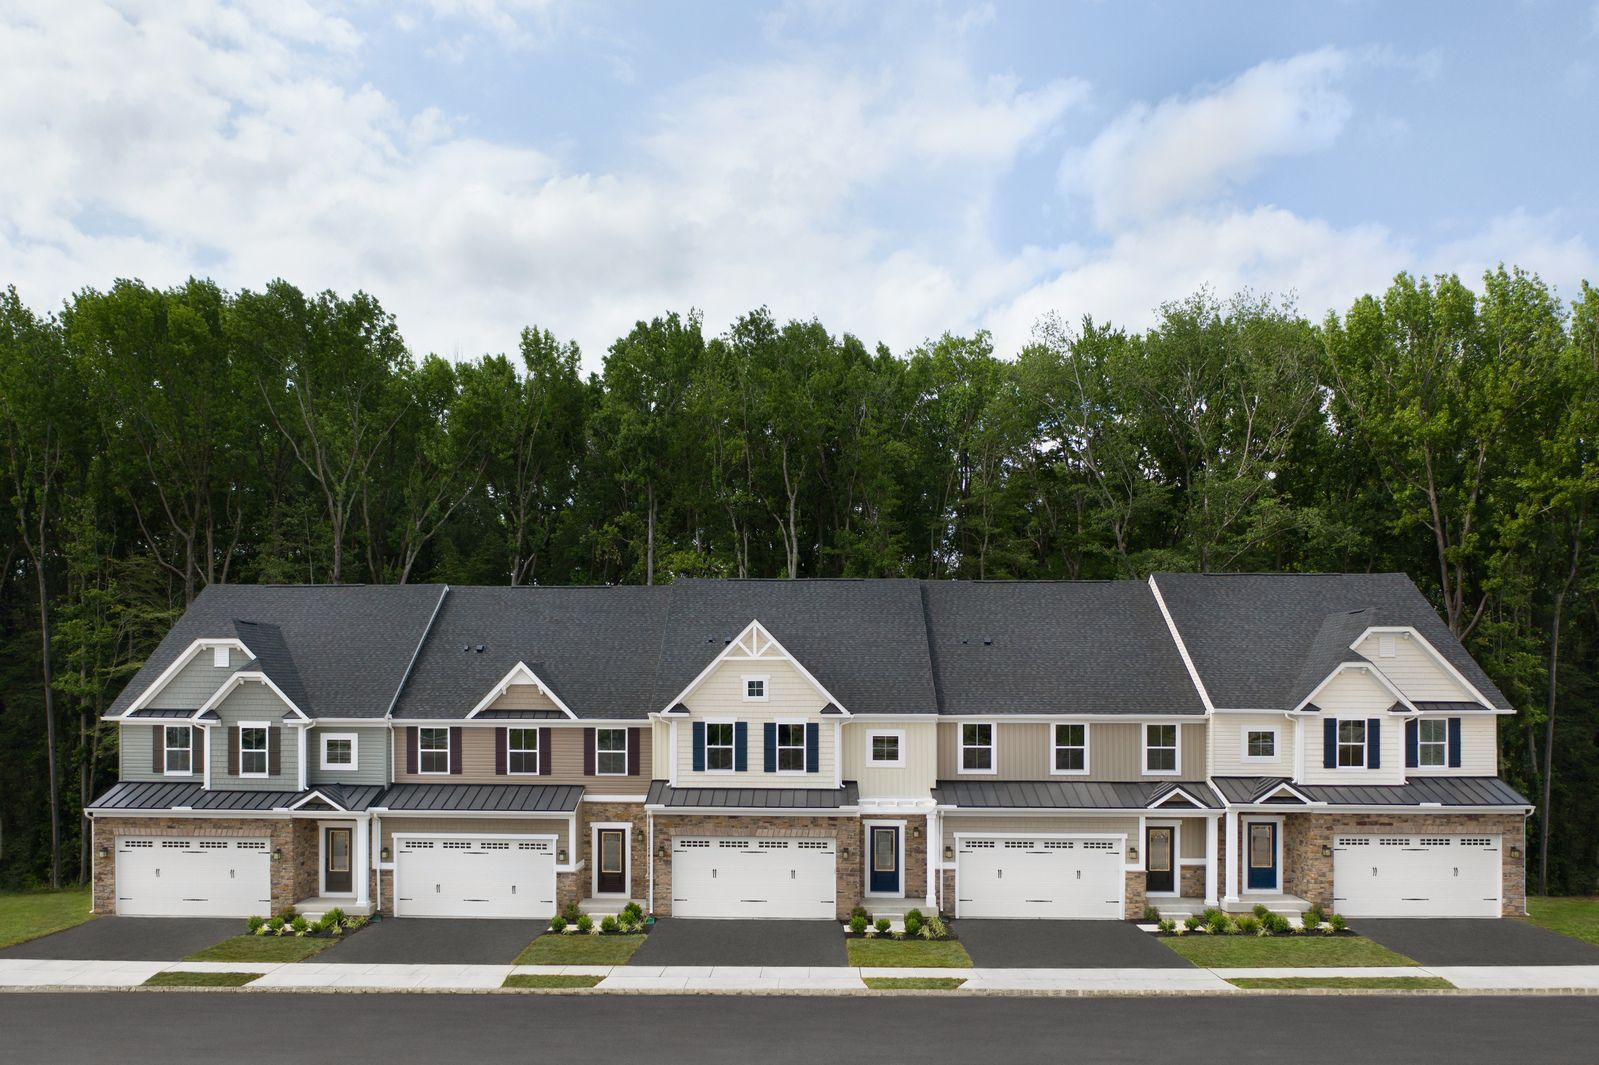 Welcome to the Fairways at Laguna Oaks:Lowest priced new homes within 5 miles of Stone Harbor. Enjoy a low-maintenance year-round shore life.Click here to join the VIP list! Photograph (1)